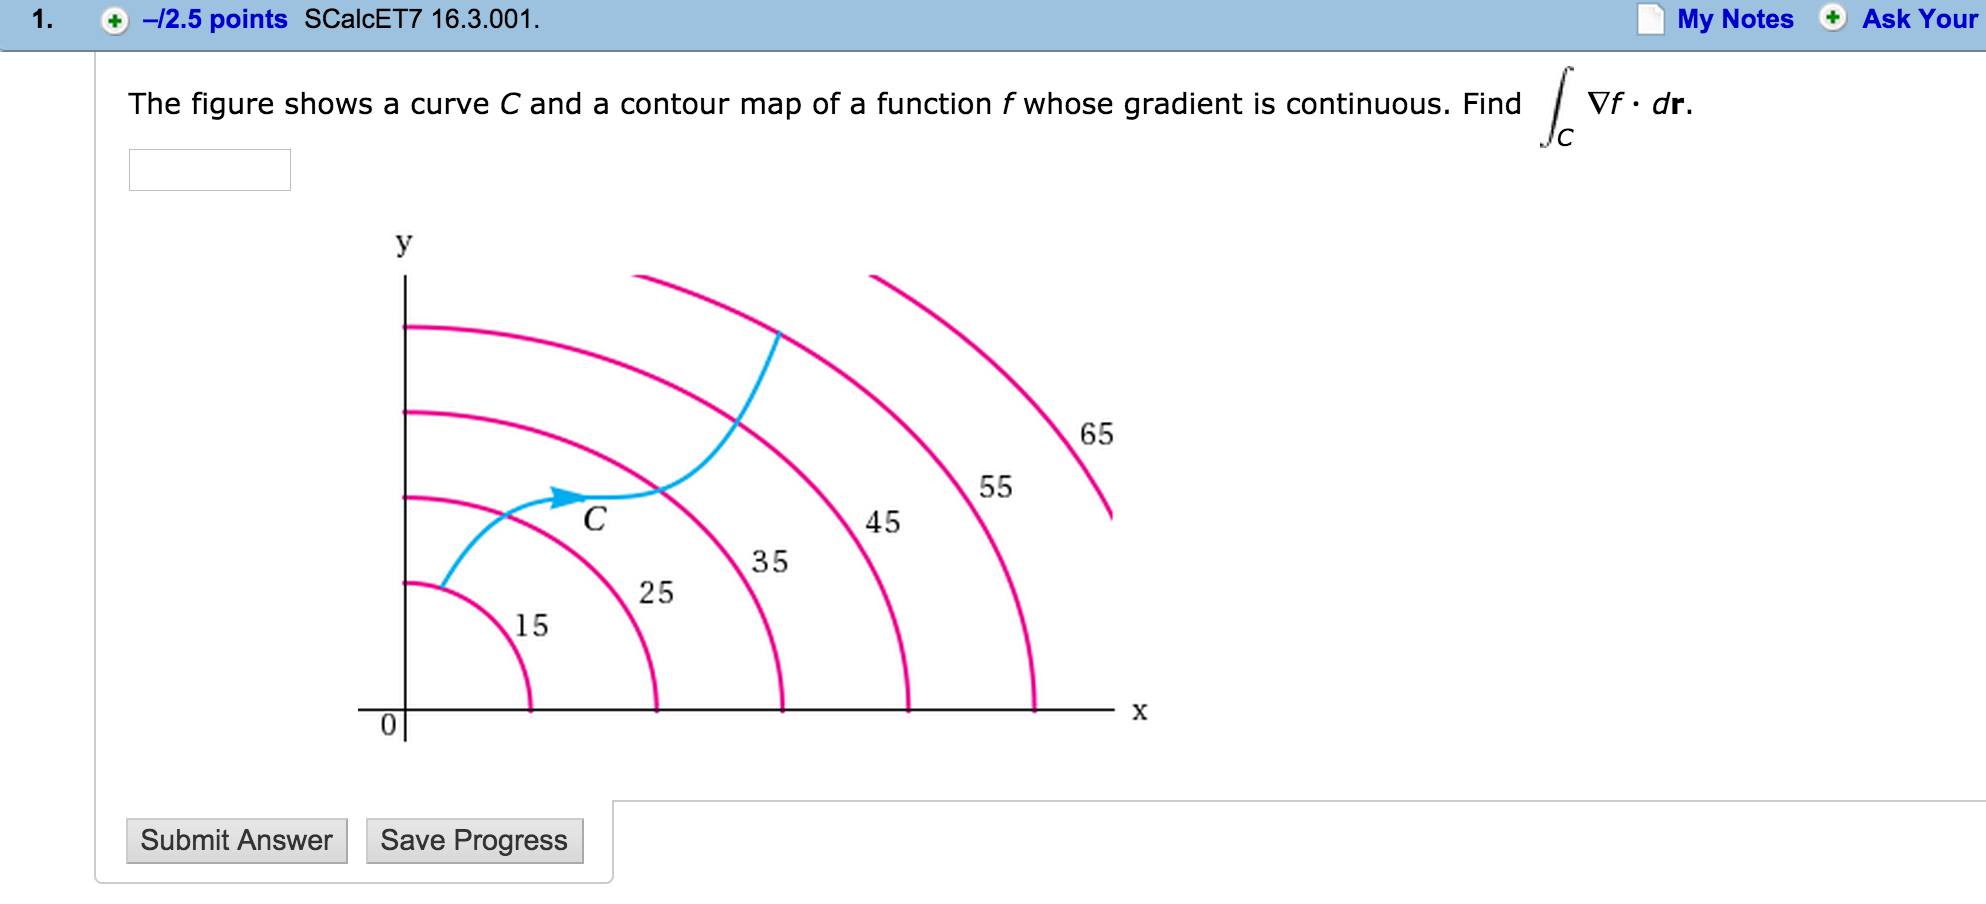 Solved: The Figure Shows A Curve C And A Contour Map Of A ... on description map, memory map, development map, problem map, hypothesis map, dilation map, secant map, inverse map, symptom map, regression map, integral map, relation map, heredity map, organelle map, process map, delineation map, origin map, ergonomics map, property map, arbitrary map,